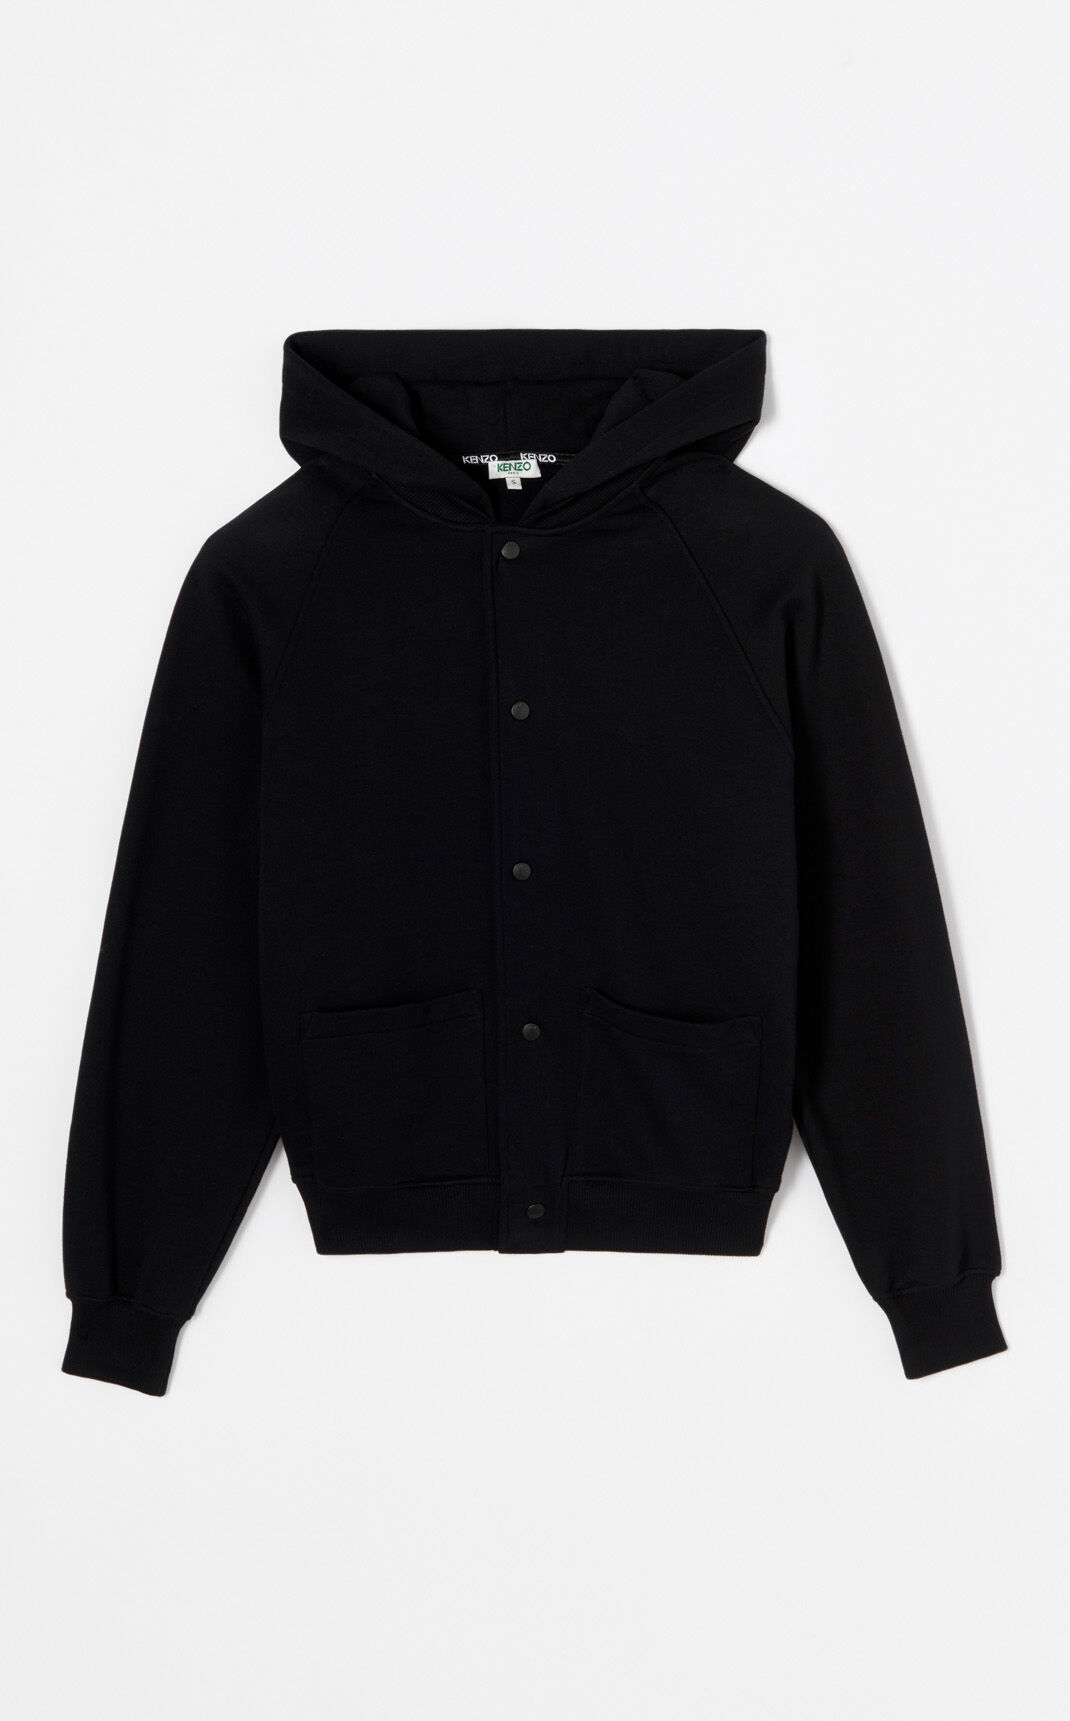 BLACK Hooded jacket with KENZO Logo for women